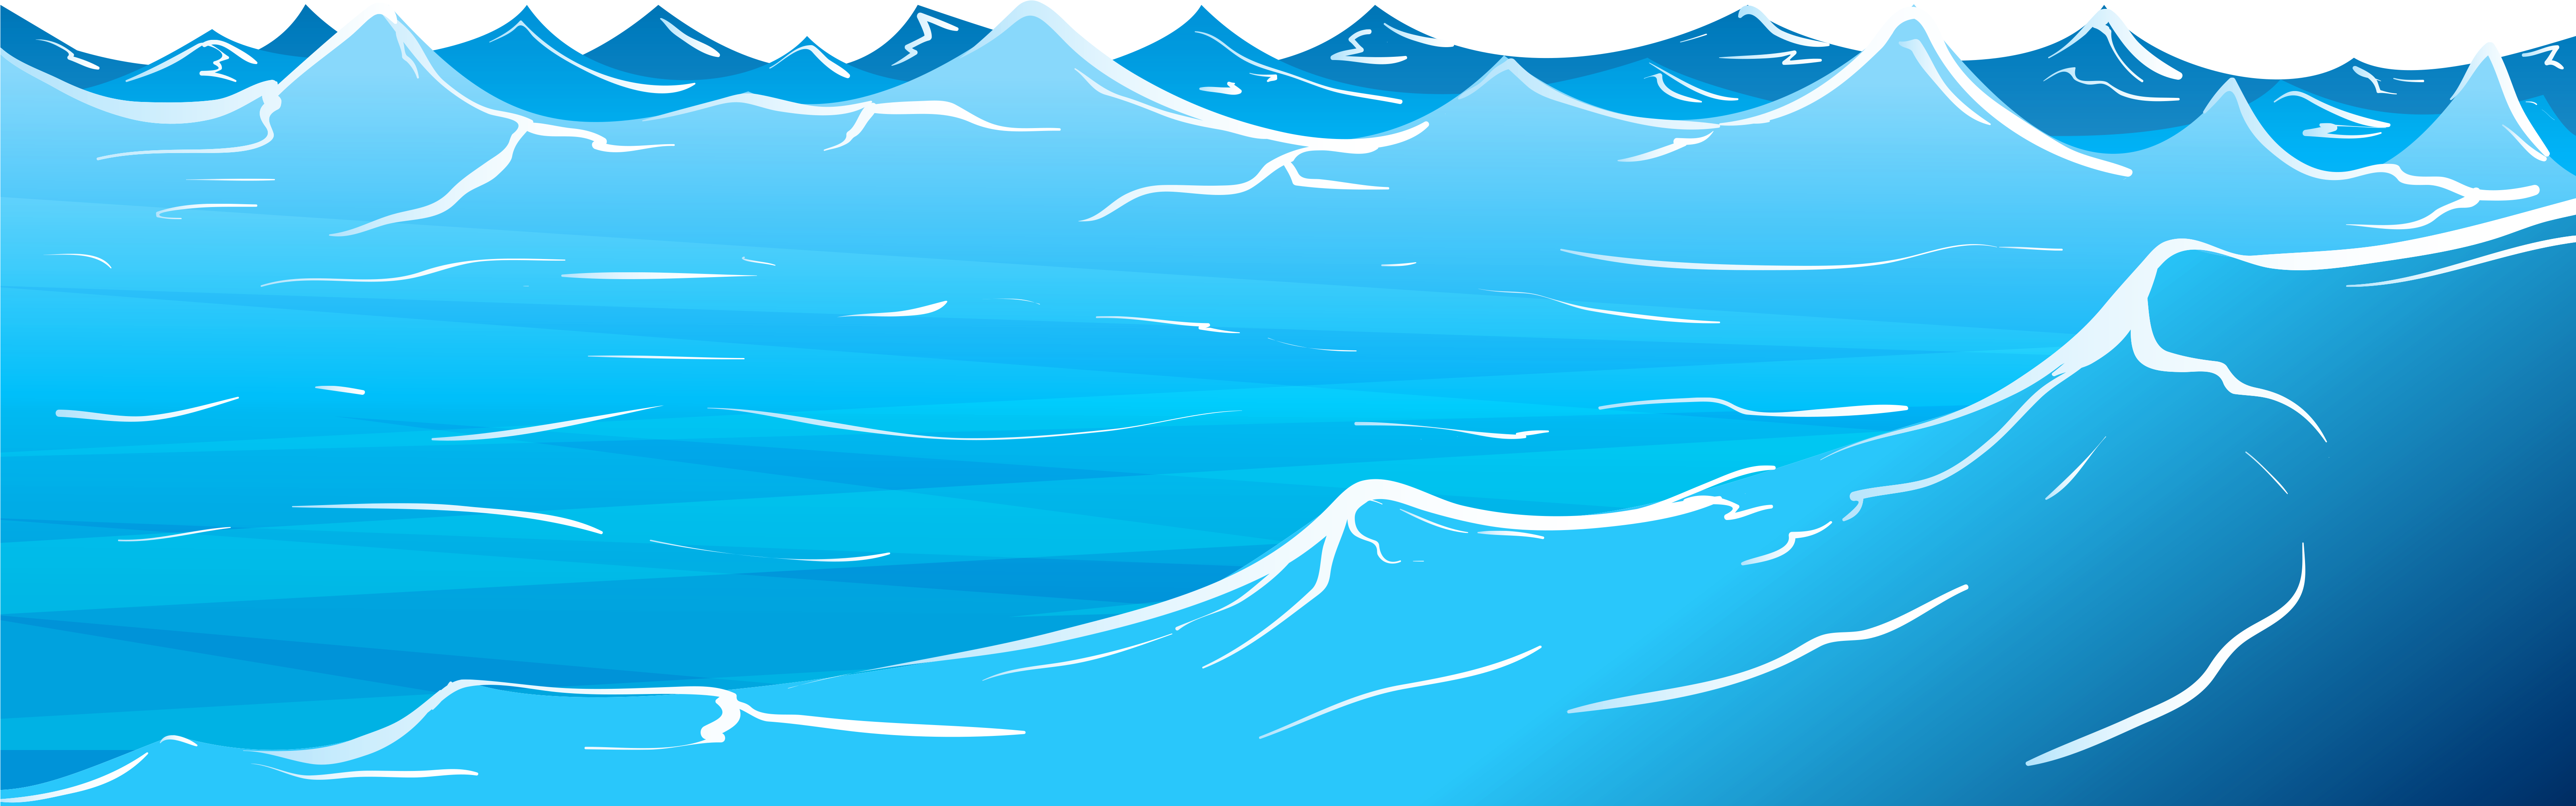 Download Sea Png Sea Clipart Full Size Png Image Pngkit Download transparent ocean png for free on pngkey.com. download sea png sea clipart full